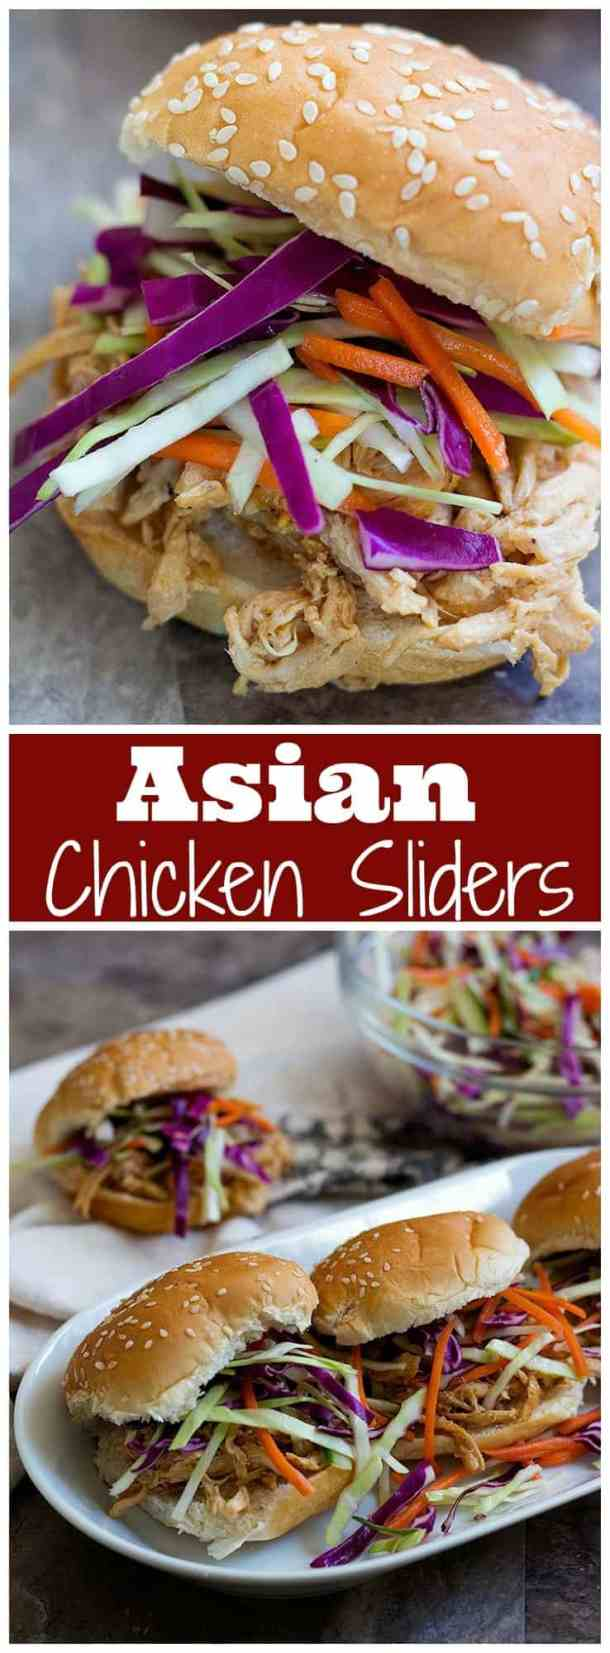 These Asian Chicken Sliders are to die for! Shredded chicken mixed with Asian flavors and a delicious slaw, these chicken sliders are perfect for feeding a crowd! #chickensliders #chickensandwich #sliderrecipe